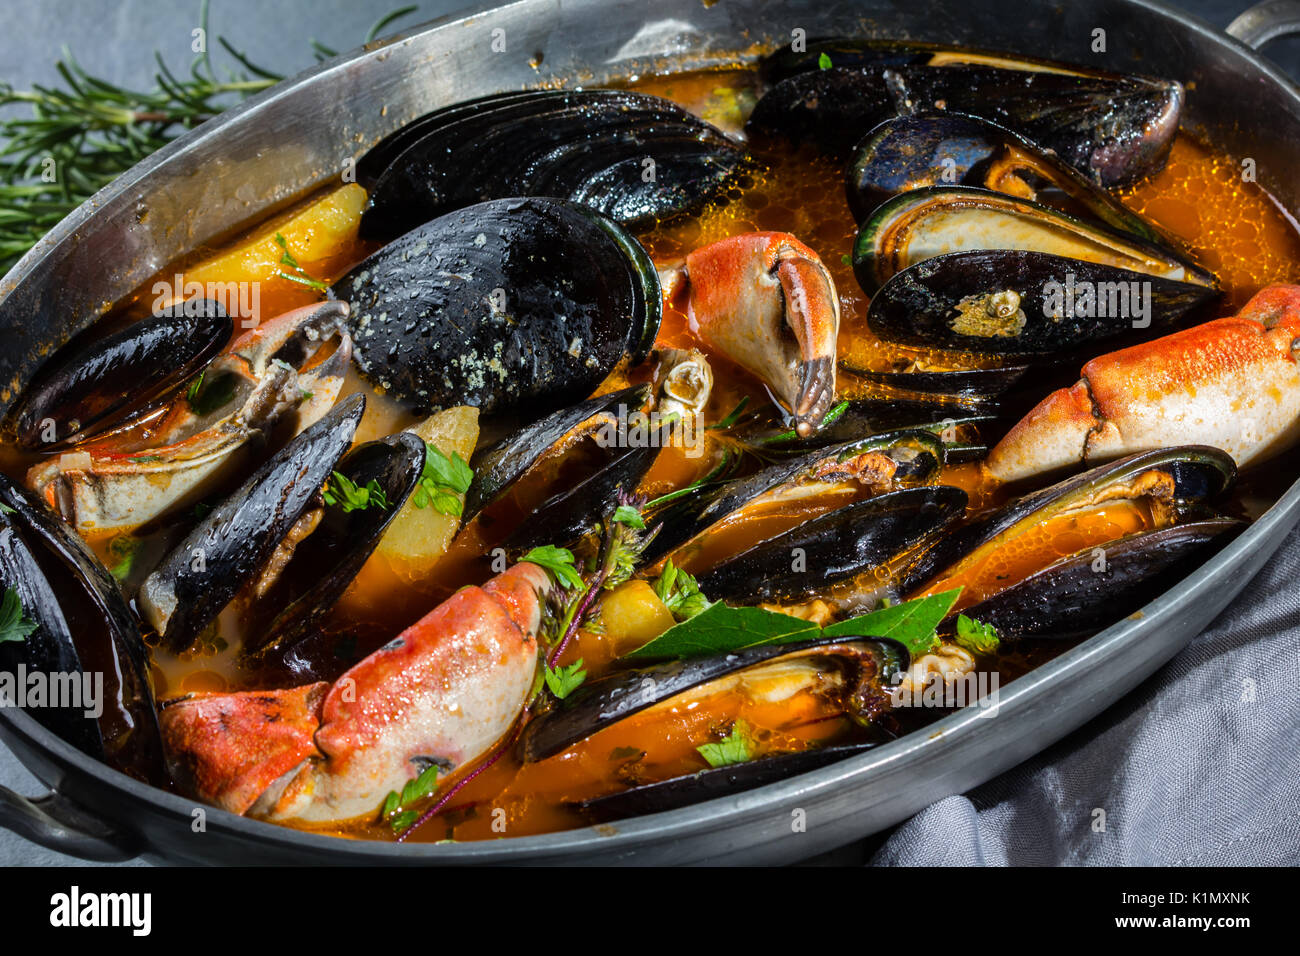 Seafood mussels crabs soup in metal pot, gray background - Stock Image